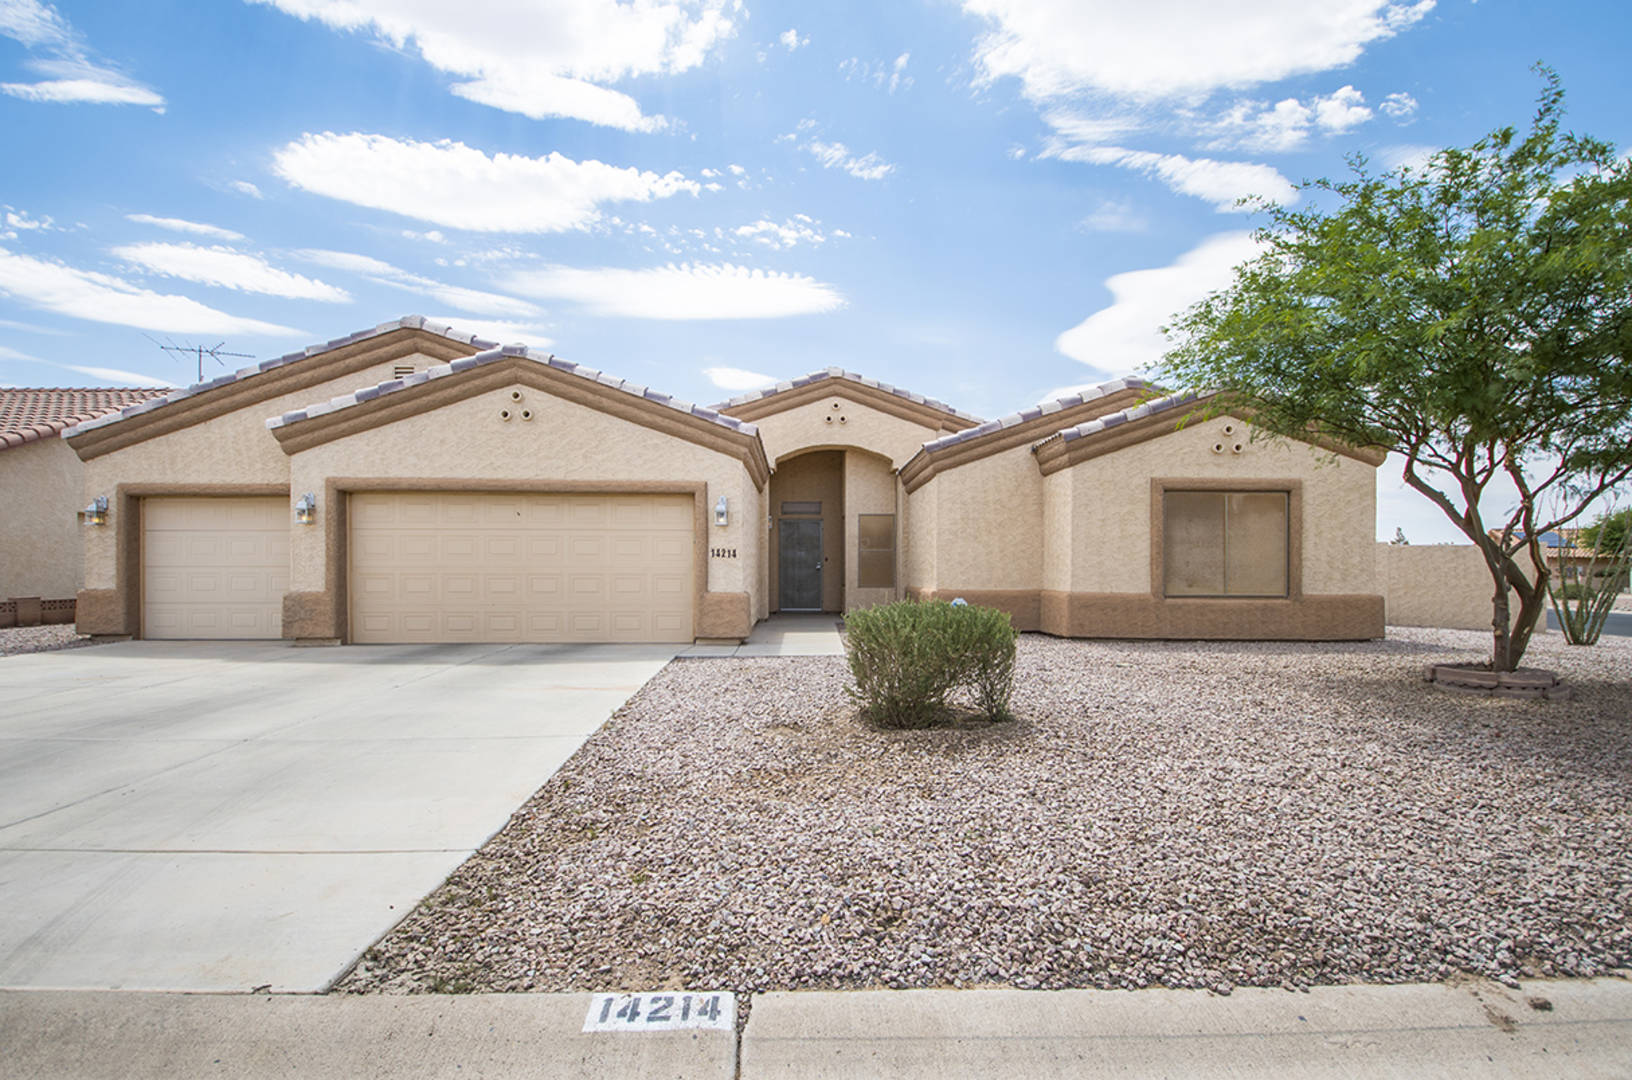 arizona city jewish singles 270 homes for sale in arizona city, az browse photos, see new properties, get open house info, and research neighborhoods on trulia.